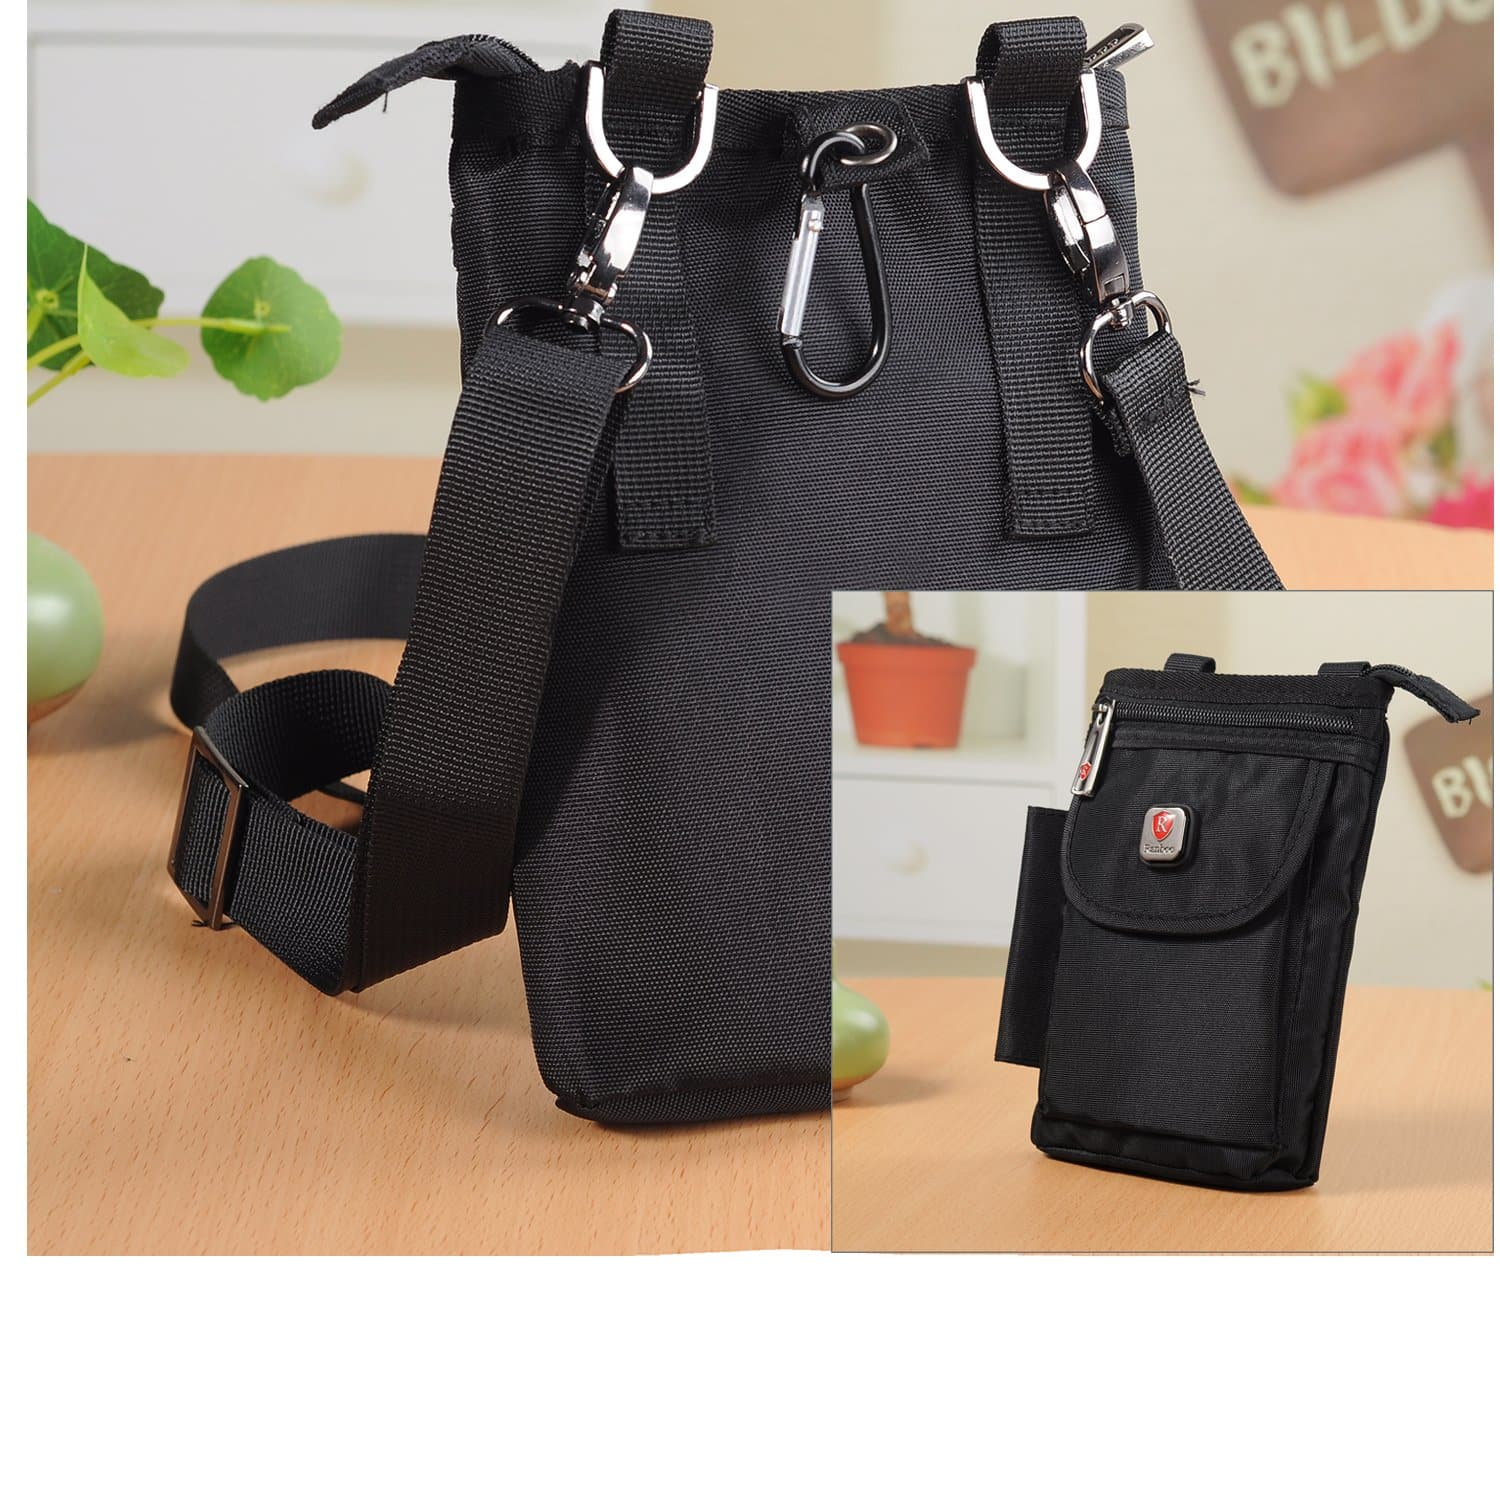 Ranboo Multifunctional Cellphone Purse Crossbody Shoulder Bag -  6.24 Amazon  After Coupon  6.23 feb9d449a3a0a